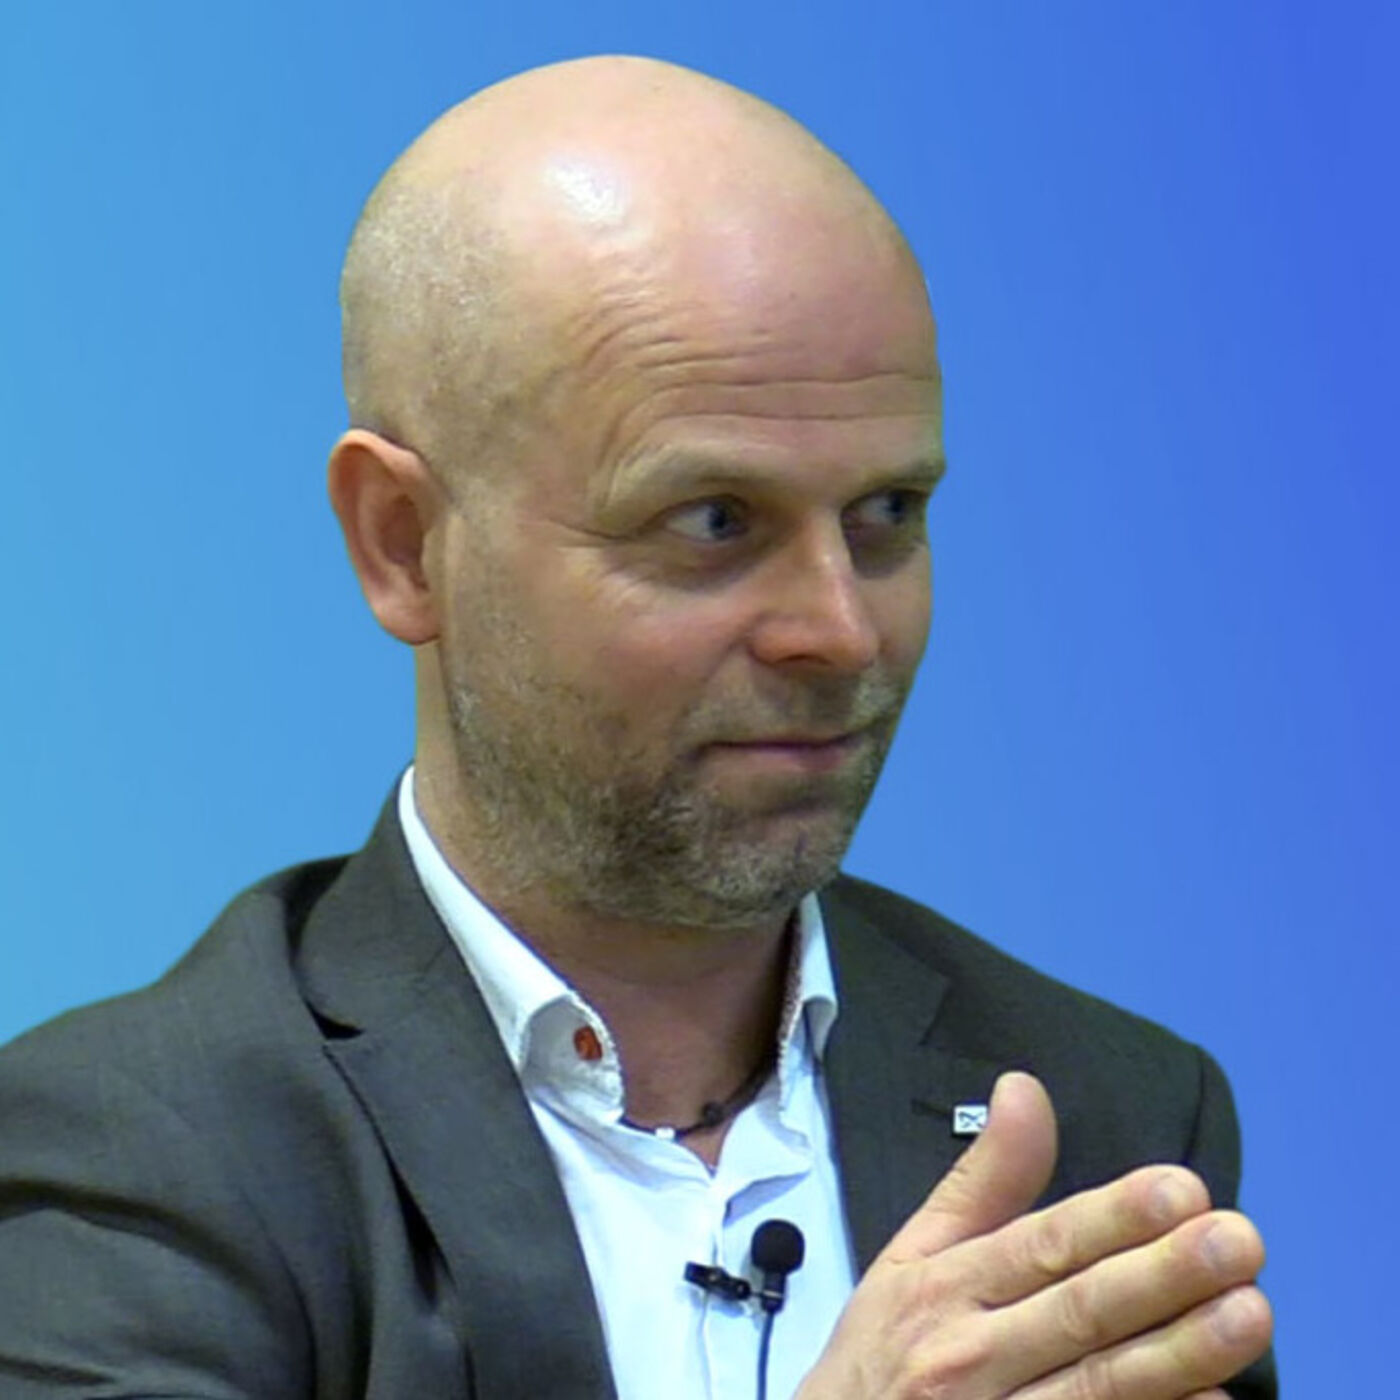 55. Grundfos' Approach to Delivering Digital Transformation - Fredrik Östbye, Grundfos